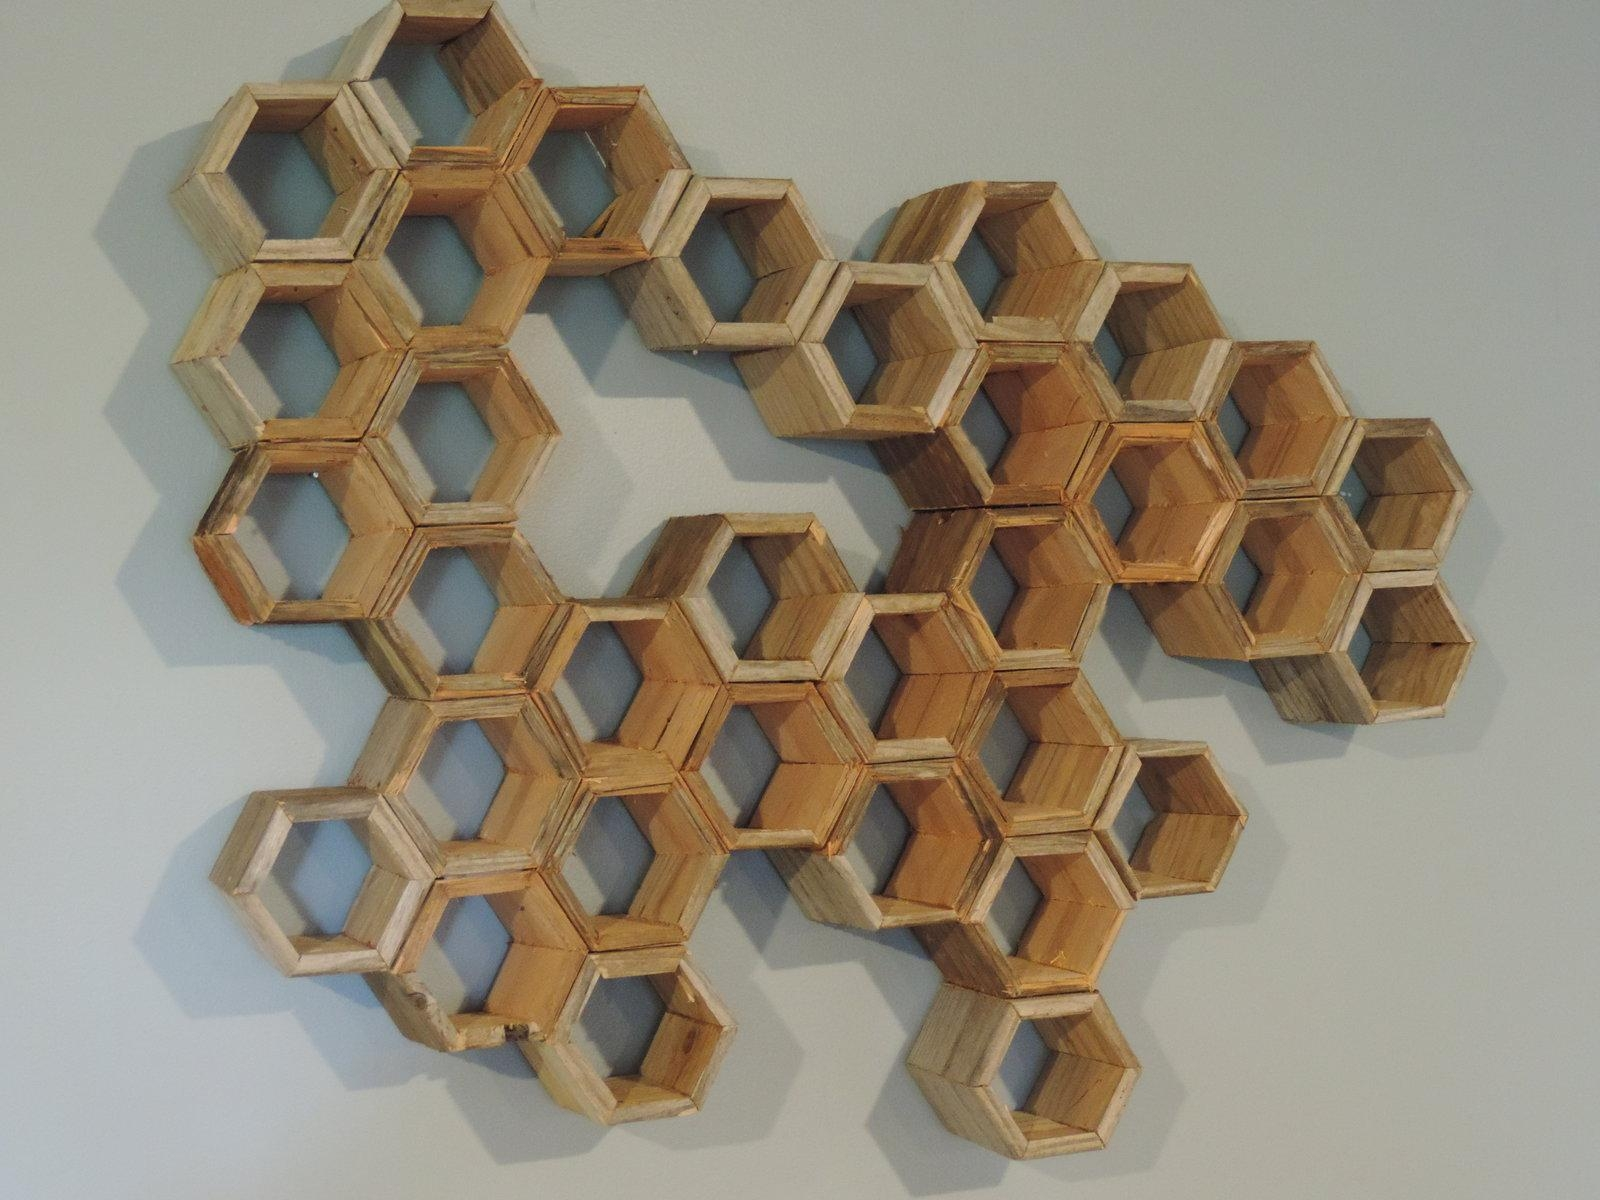 Driftwood Honeycomb Wall Artphilryanwoodworking On Deviantart Intended For Driftwood Wall Art (Image 6 of 20)